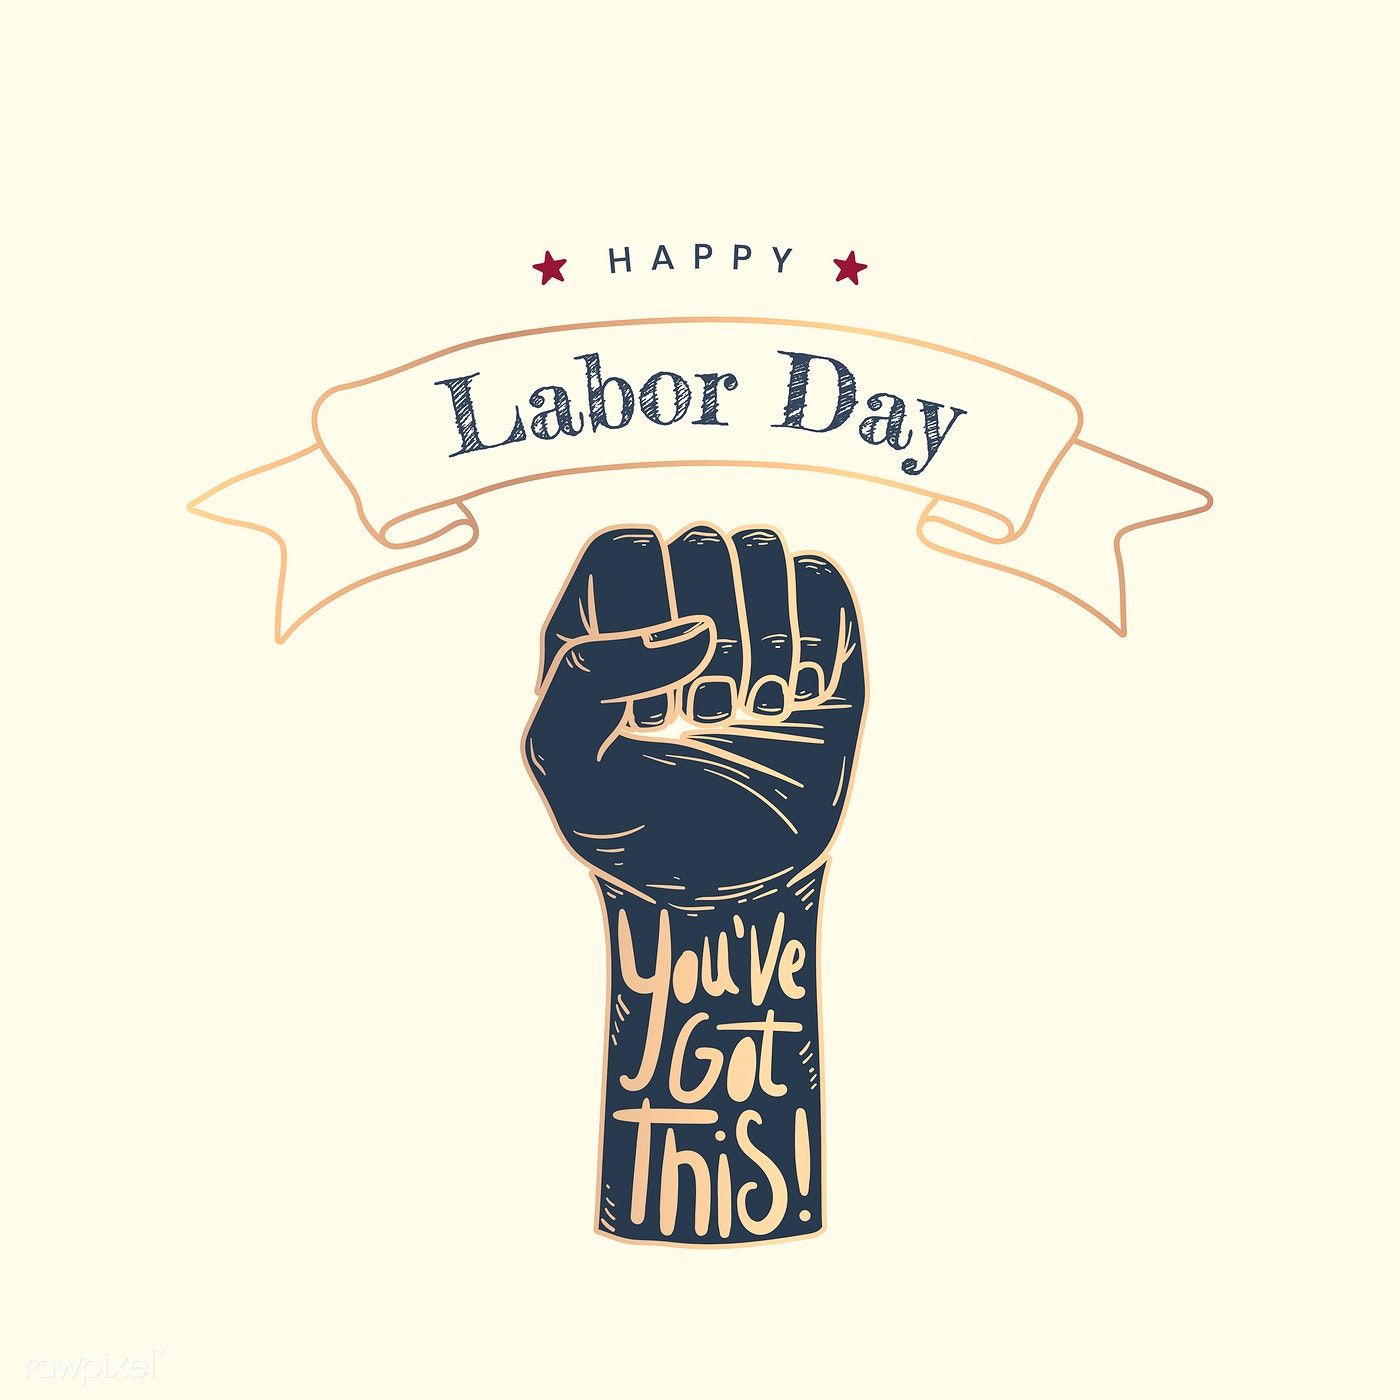 Happy Labor Day power fist vector   free image by rawpixel.com #happylabordayimages